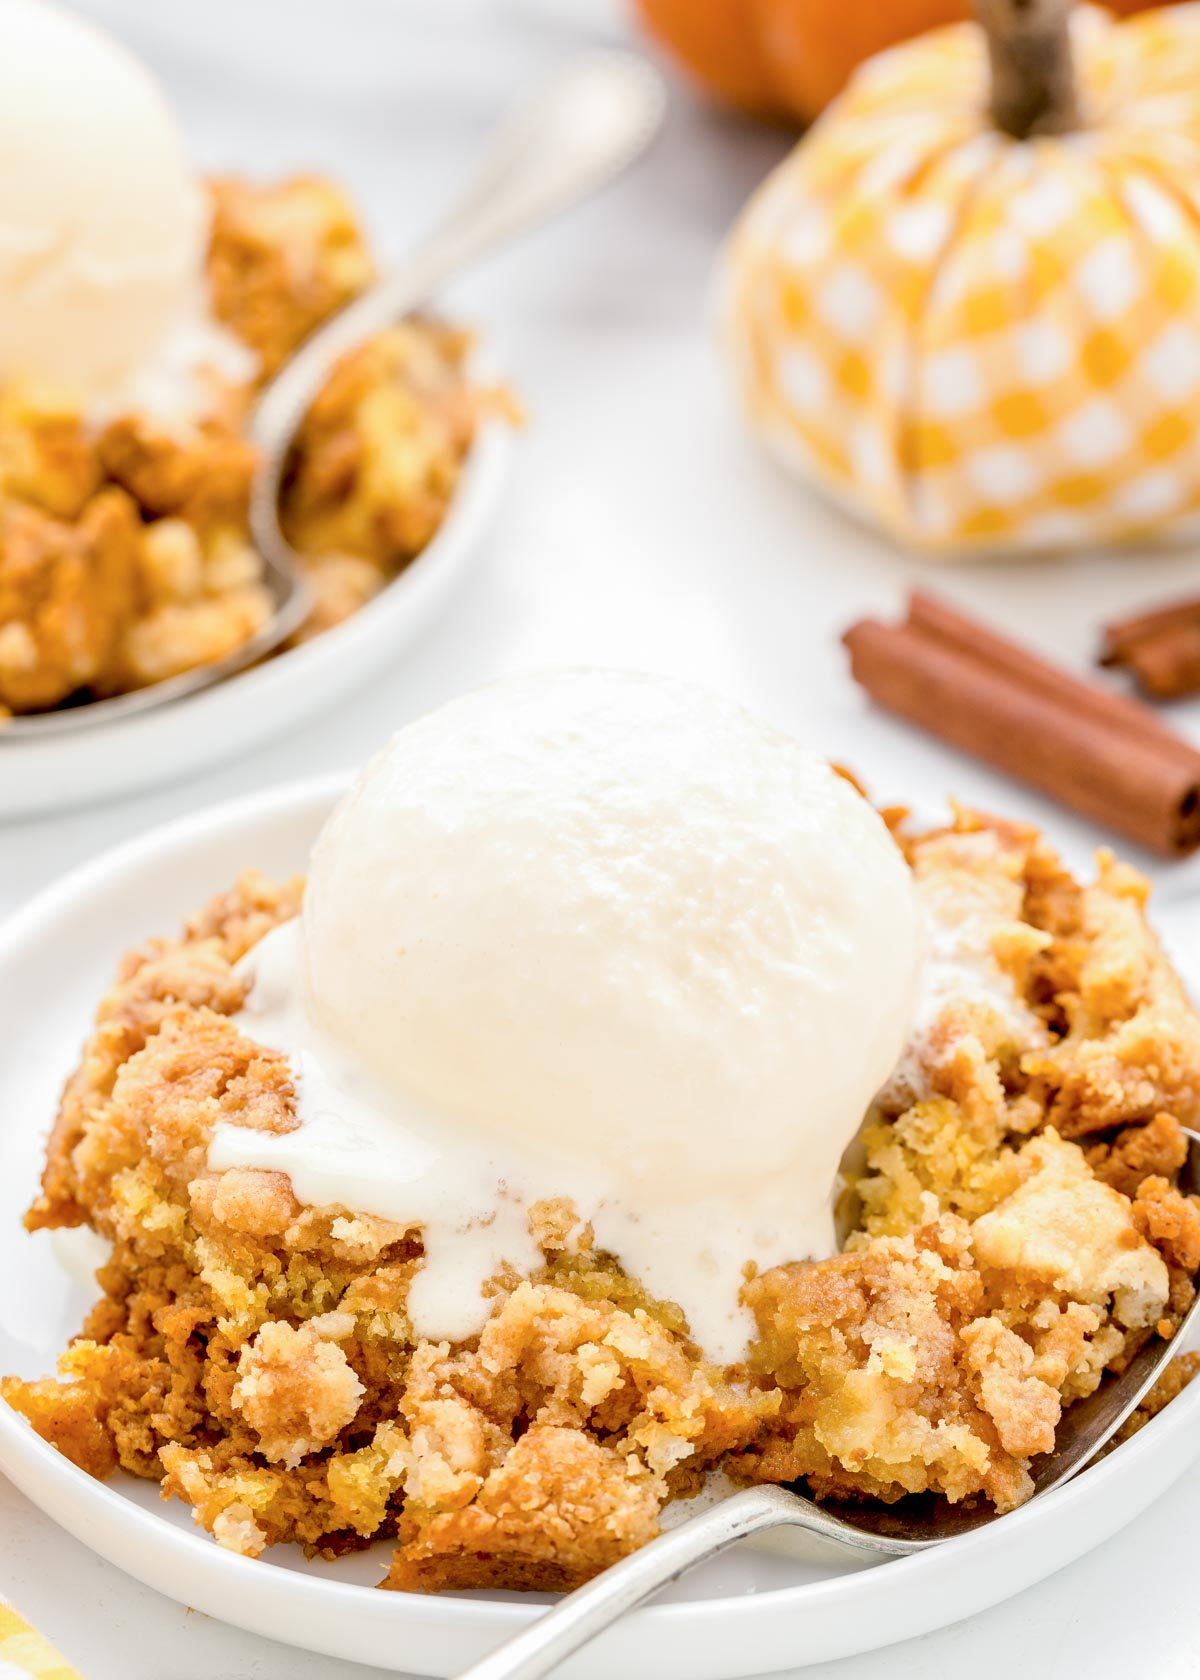 Pumpkin cobbler topped with vanilla ice cream on a white plate